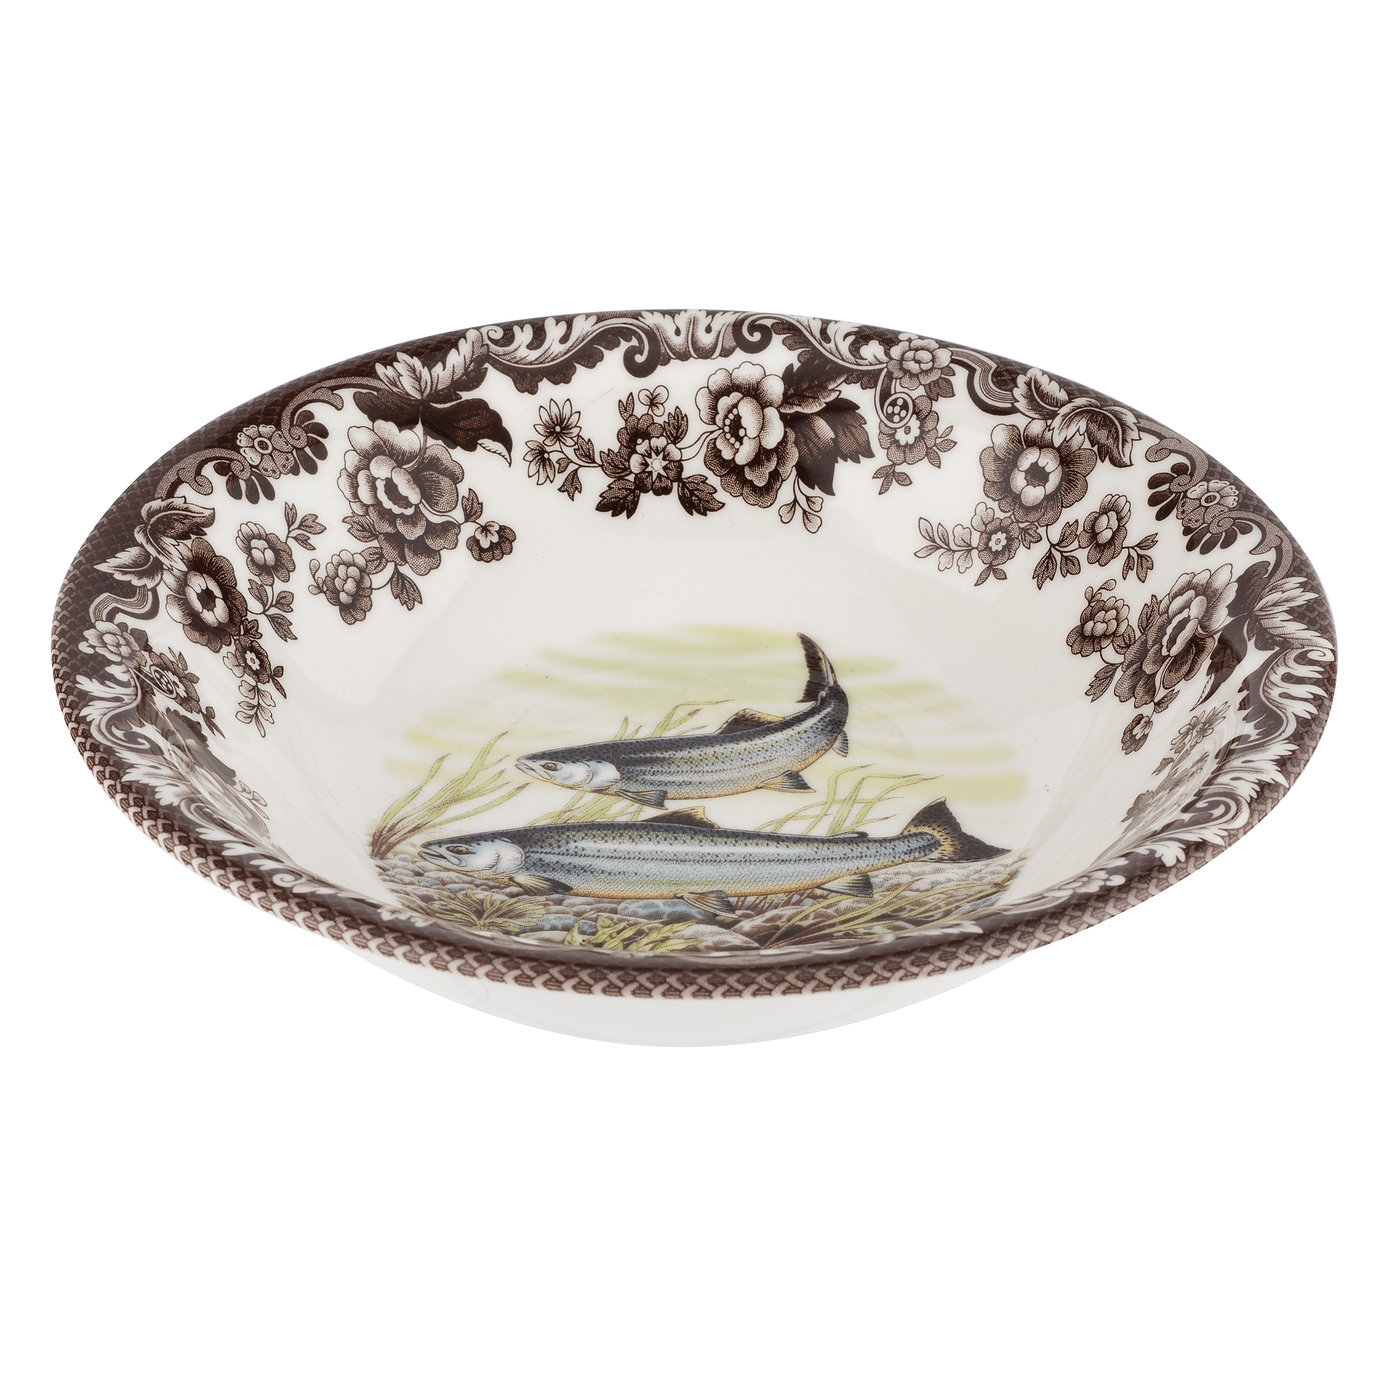 Spode Woodland Ascot Cereal Bowl 8 Inch (King Salmon) image number 0